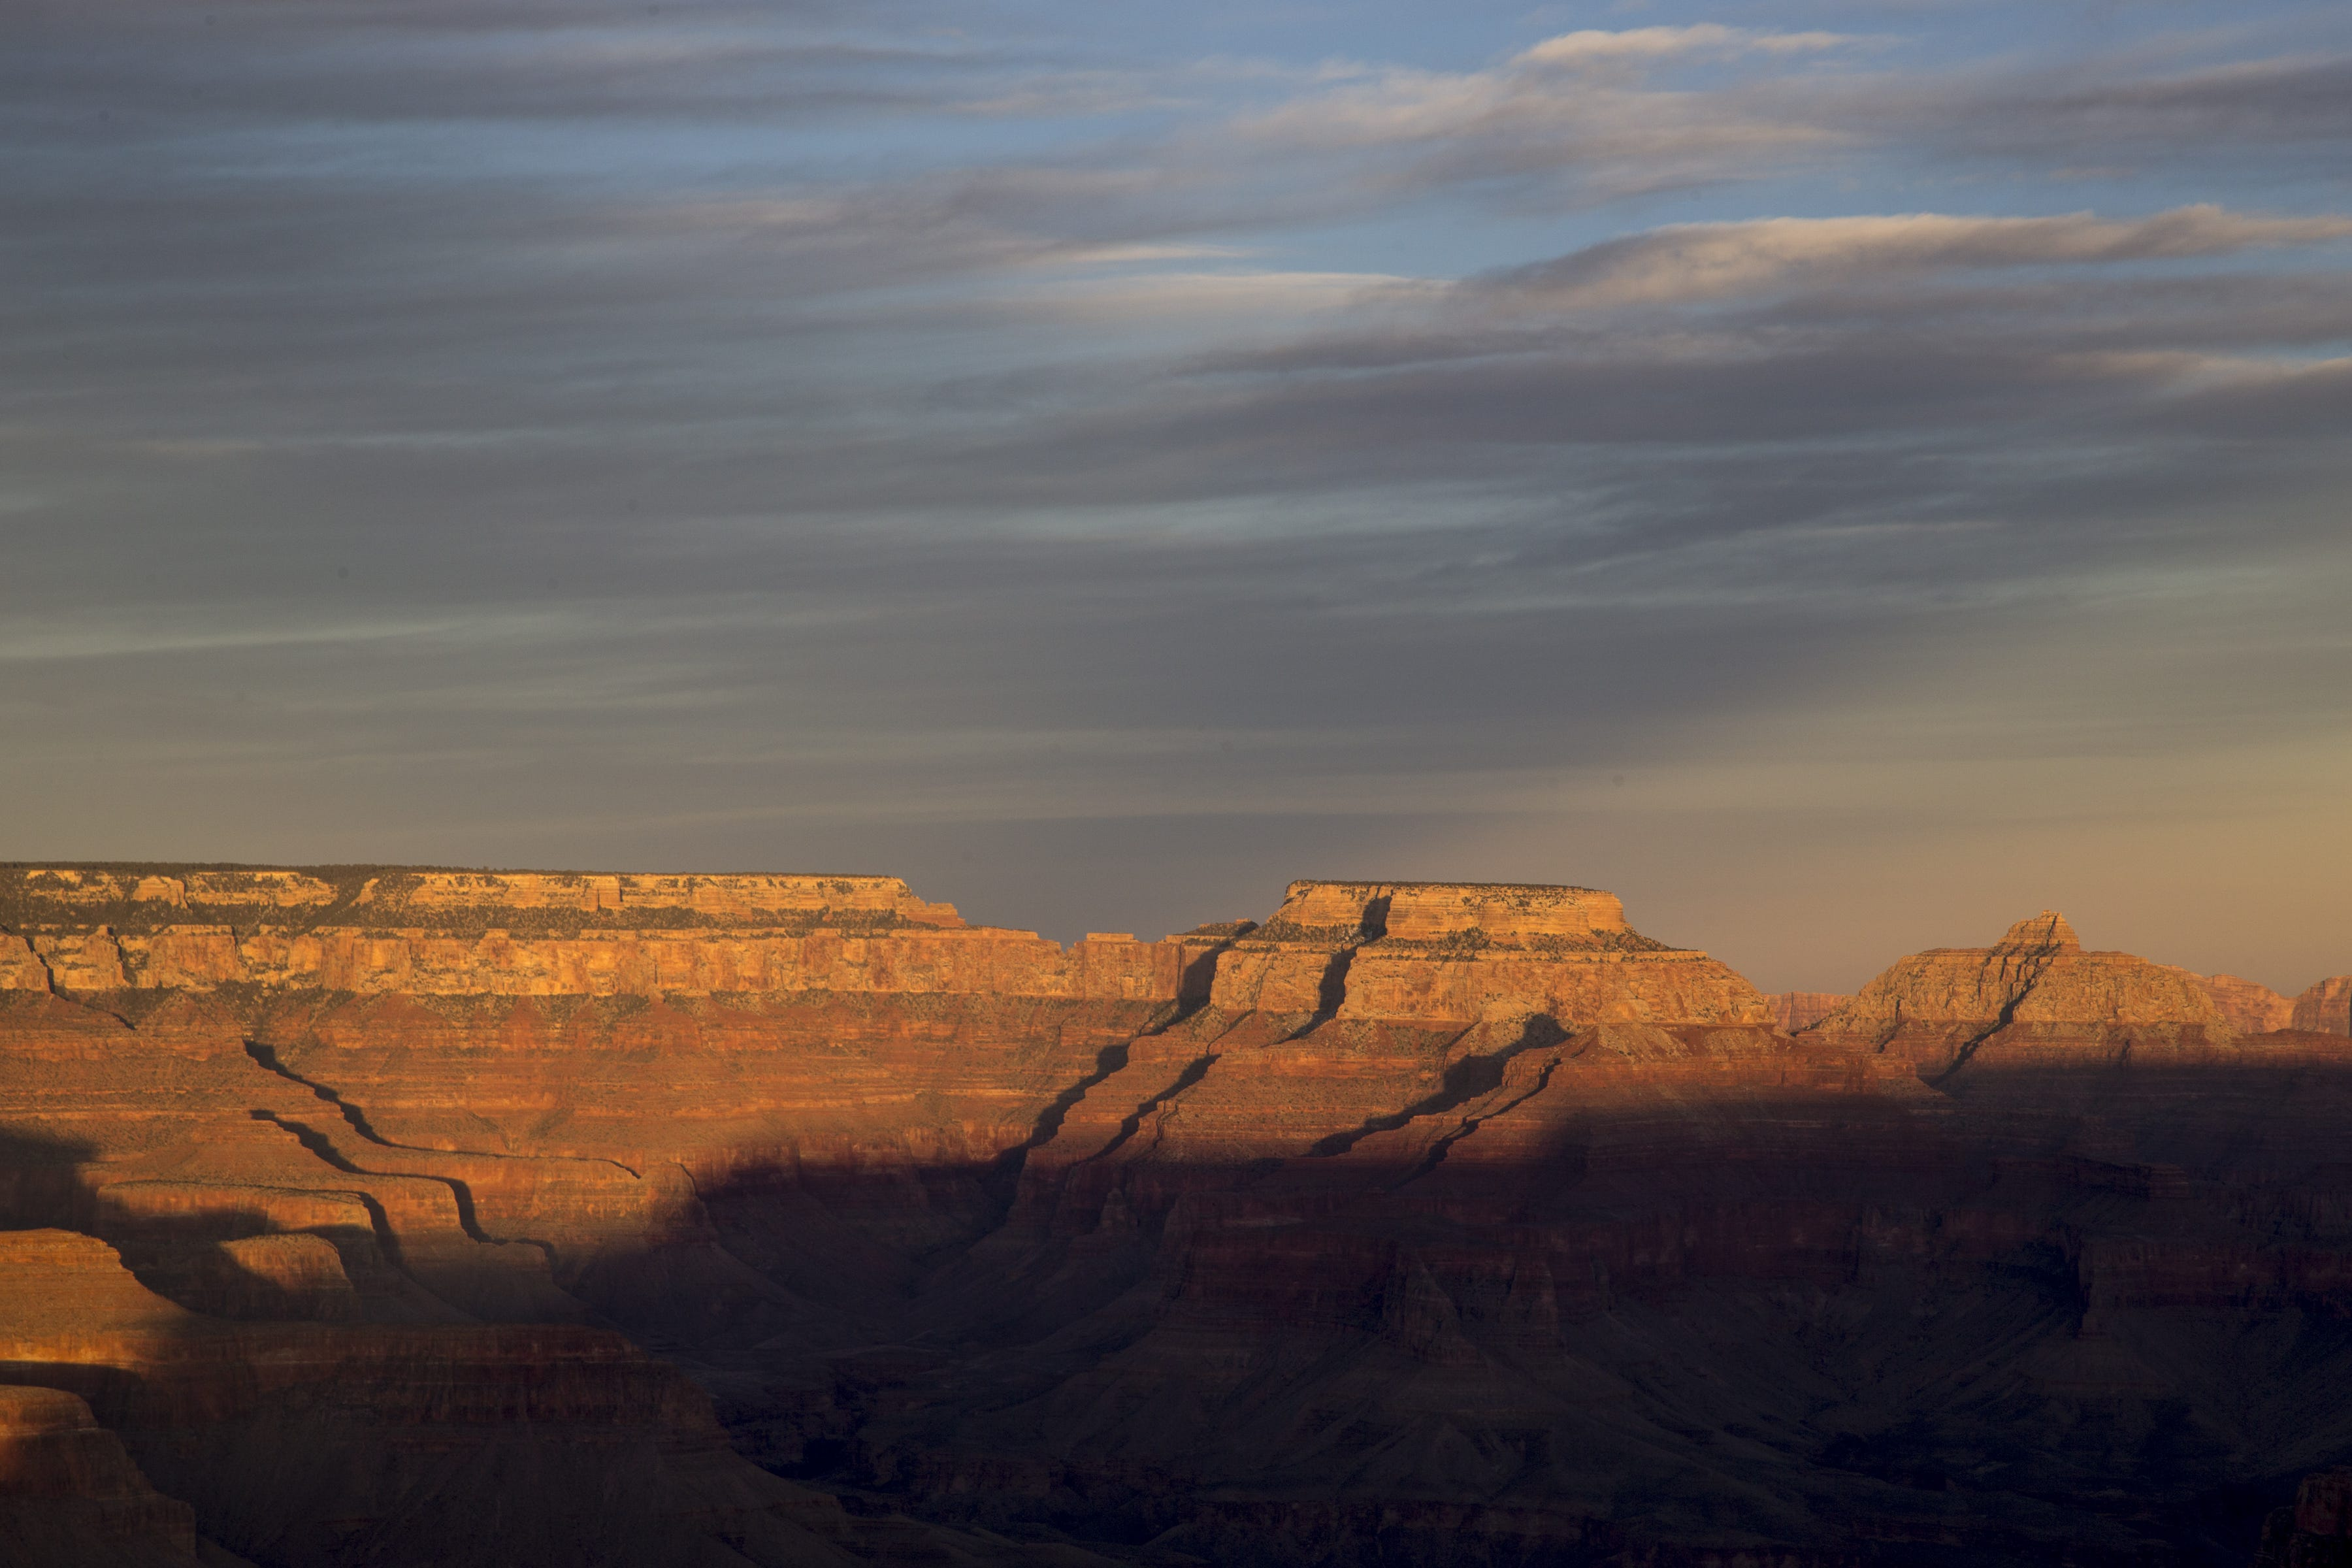 Grand Canyon tourists exposed for years to radiation in museum building, safety manager says